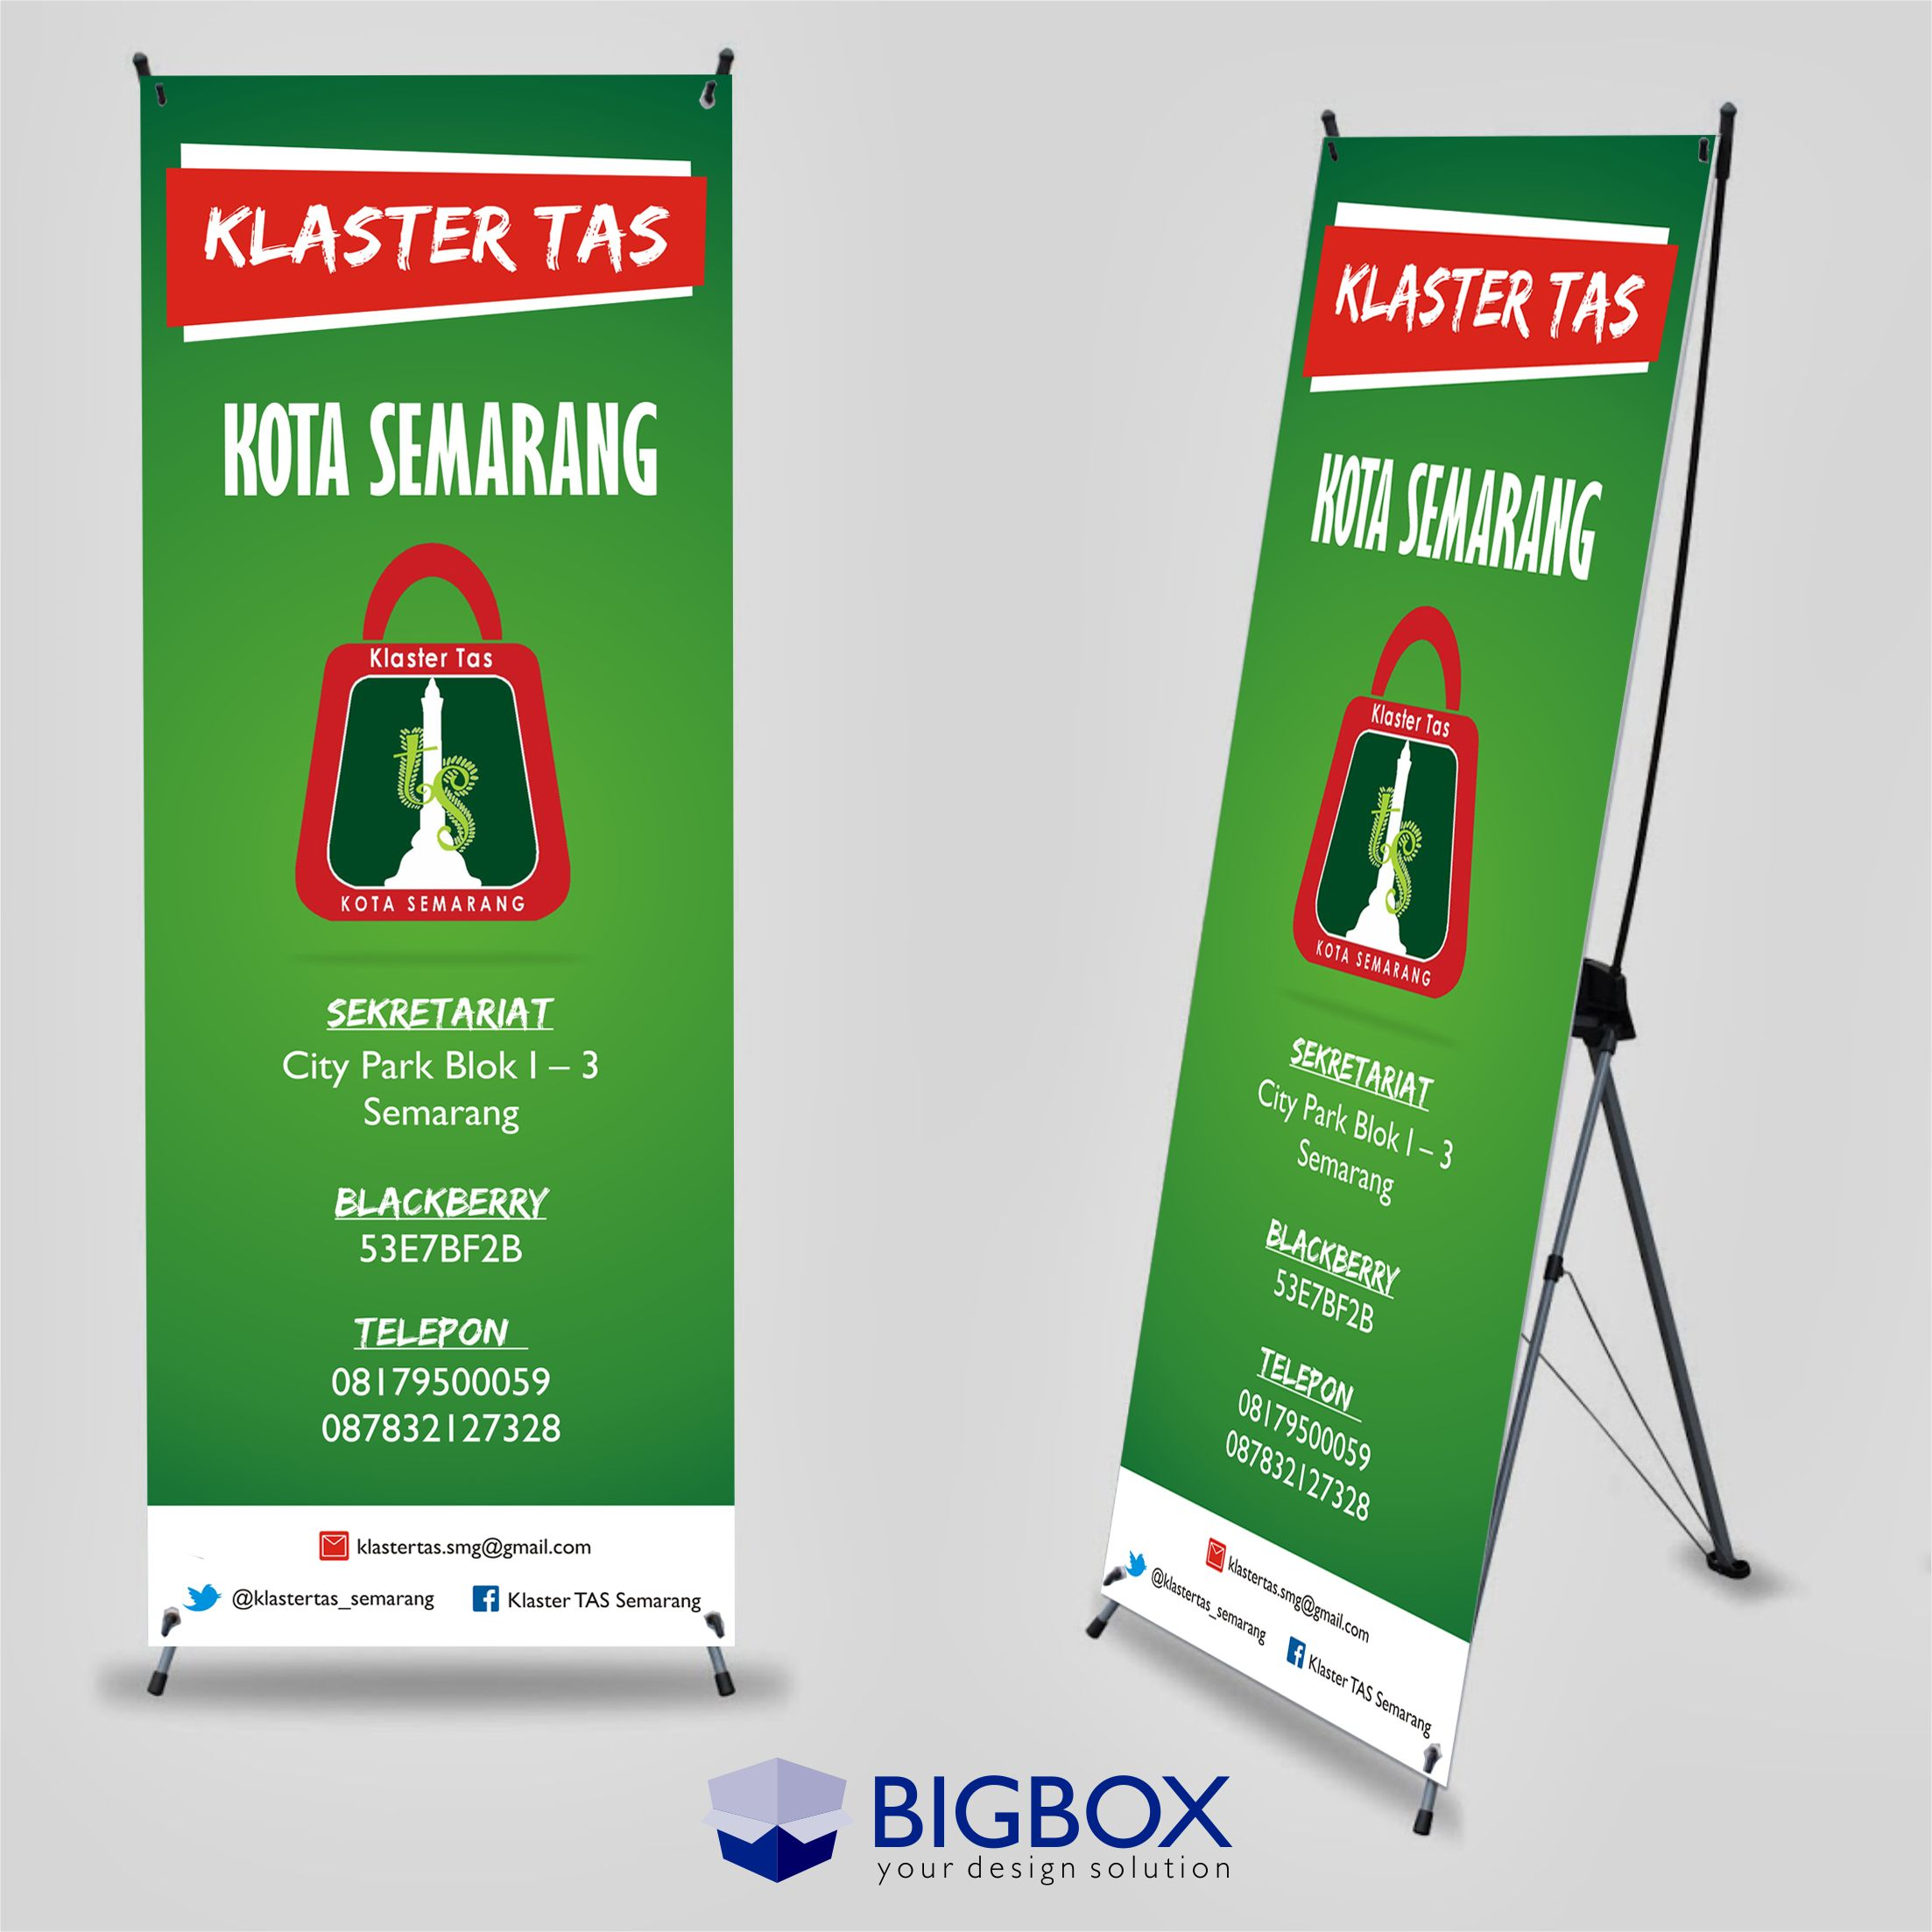 Banner printing specialists. Starting at only £, roller banners are free-standing advertising graphics which can be rolled up for storage. Best for.